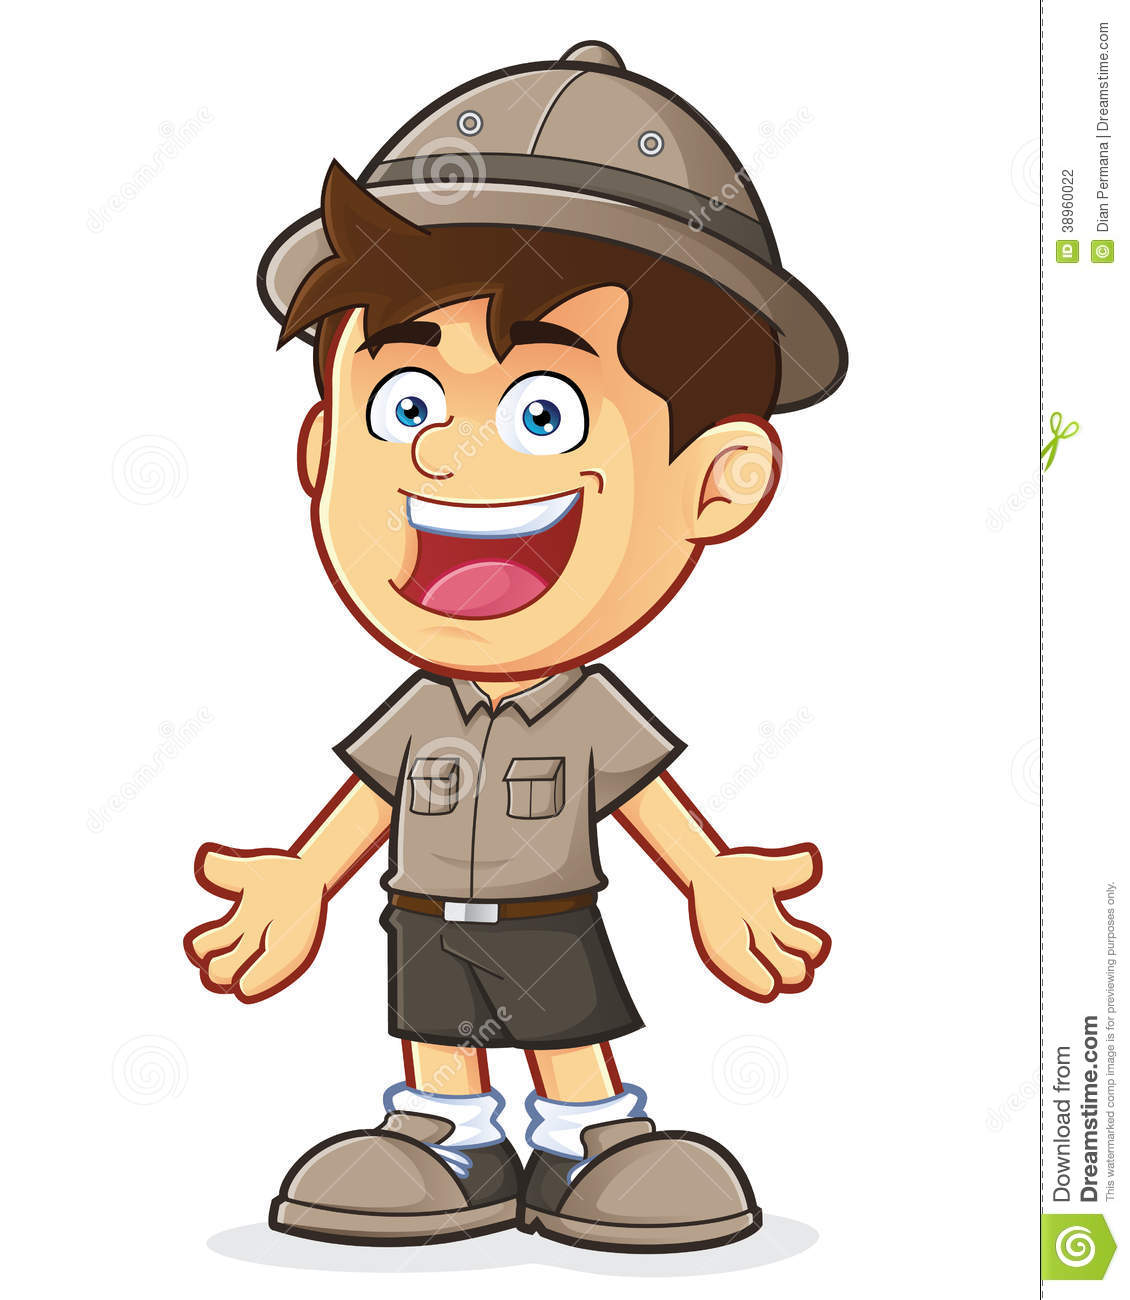 hight resolution of boy scout or explorer boy in welcoming gesture